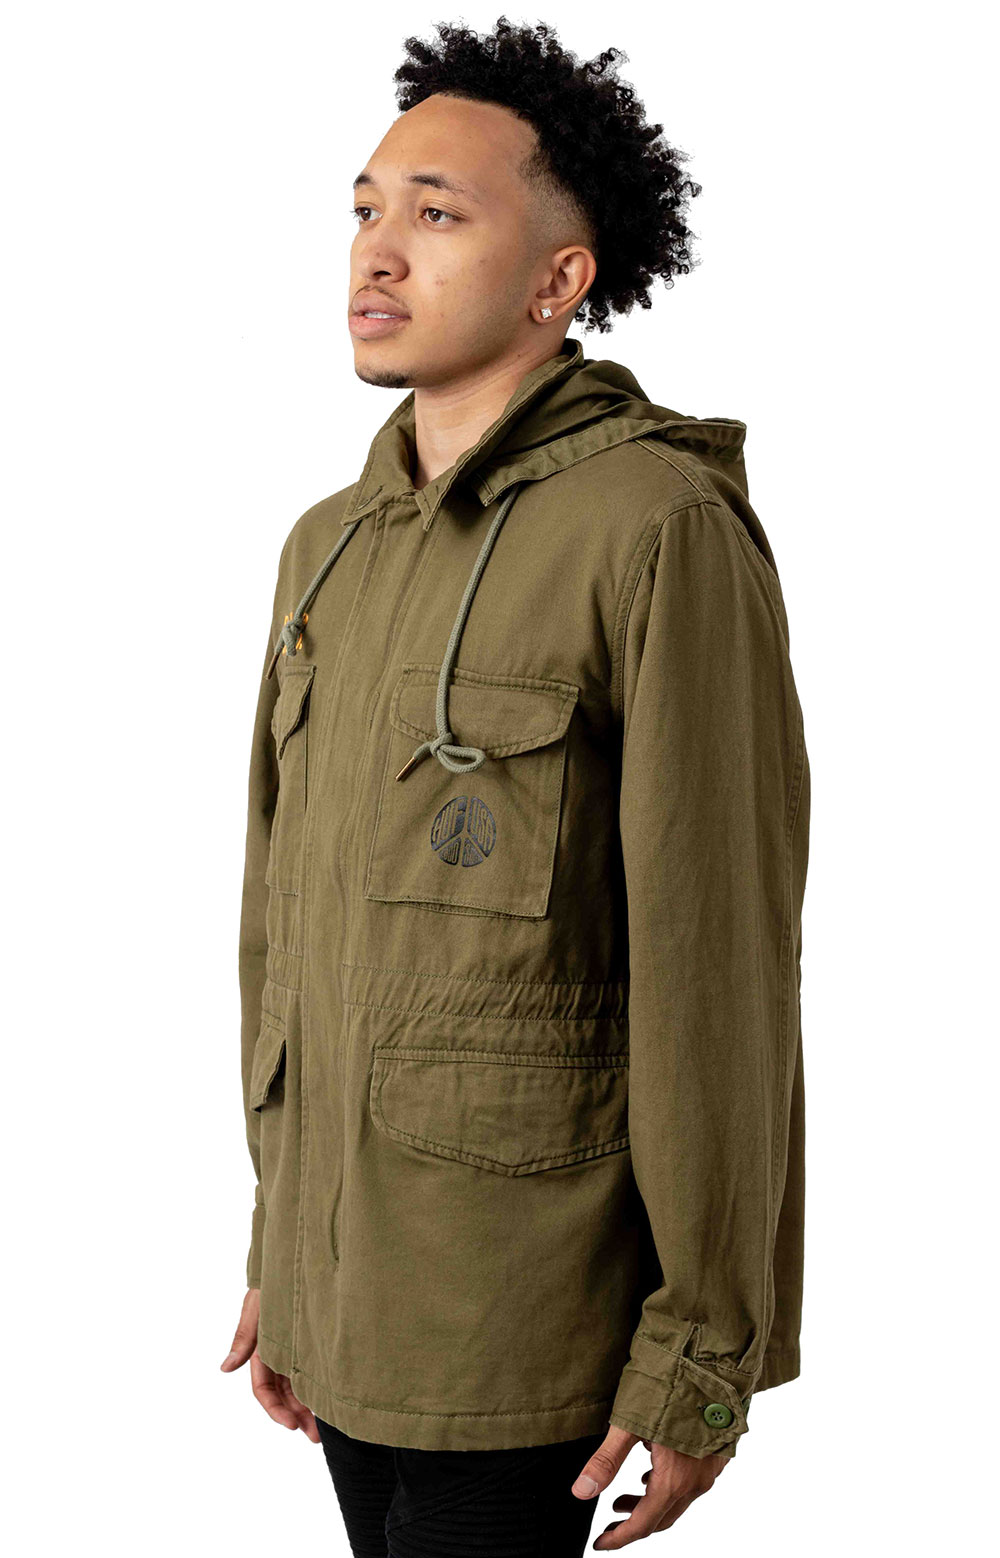 Woodstock Objector M65 Jacket  2